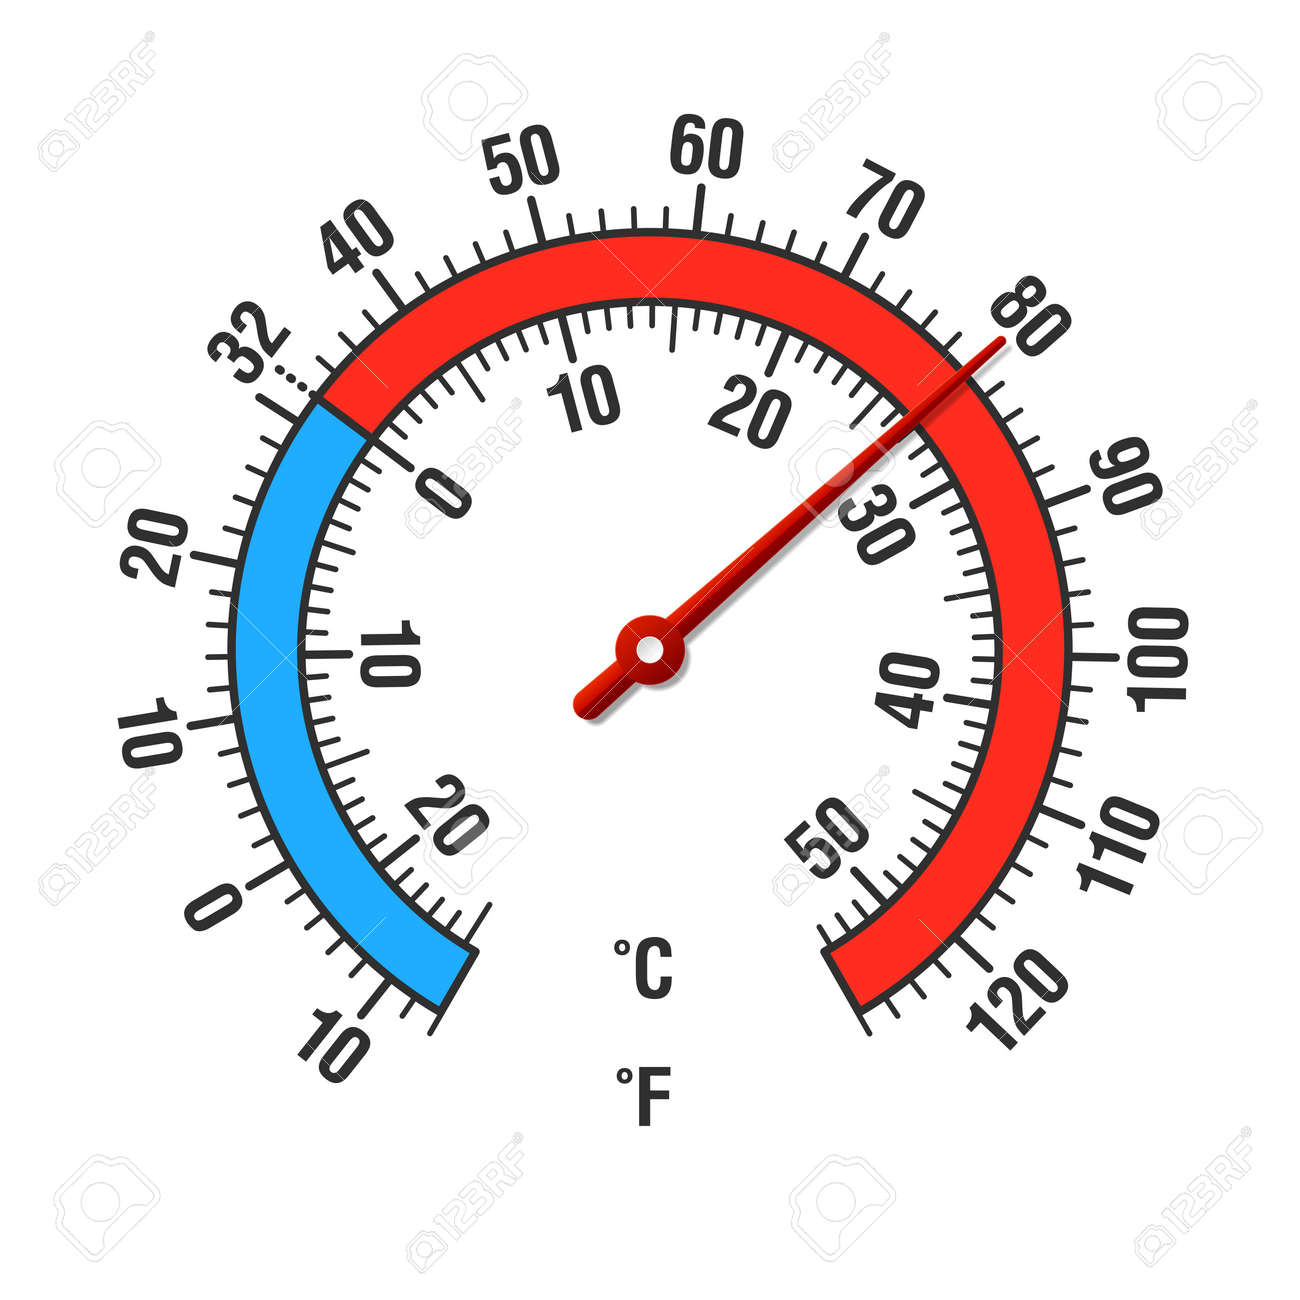 Celsius and Fahrenheit round thermometer Stock Vector - 12493709